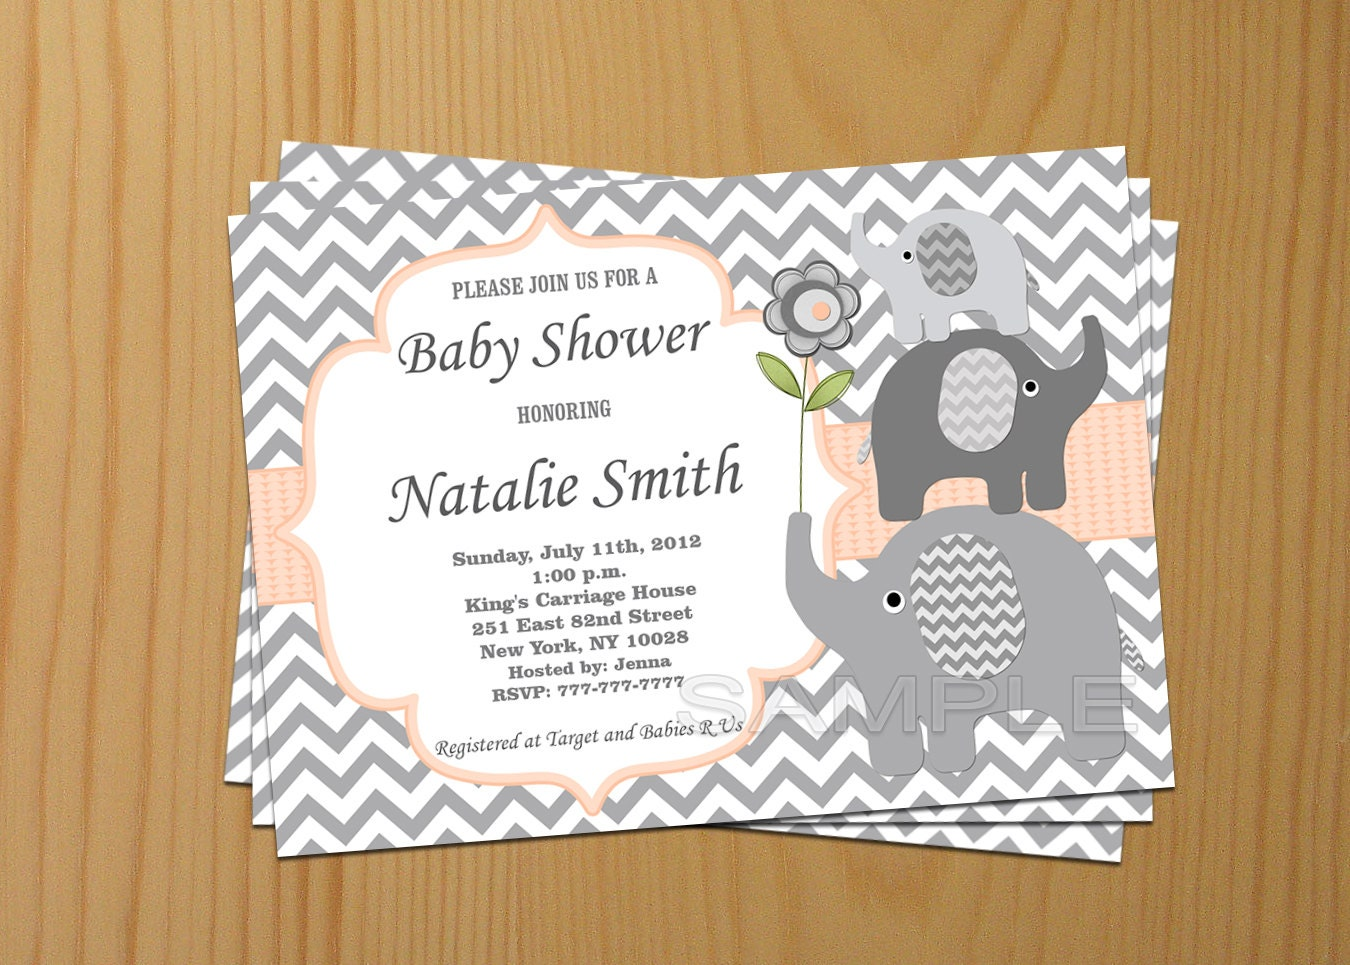 Editable Baby Shower Invitation Elephant Baby Shower - Free baby shower invitations templates for word